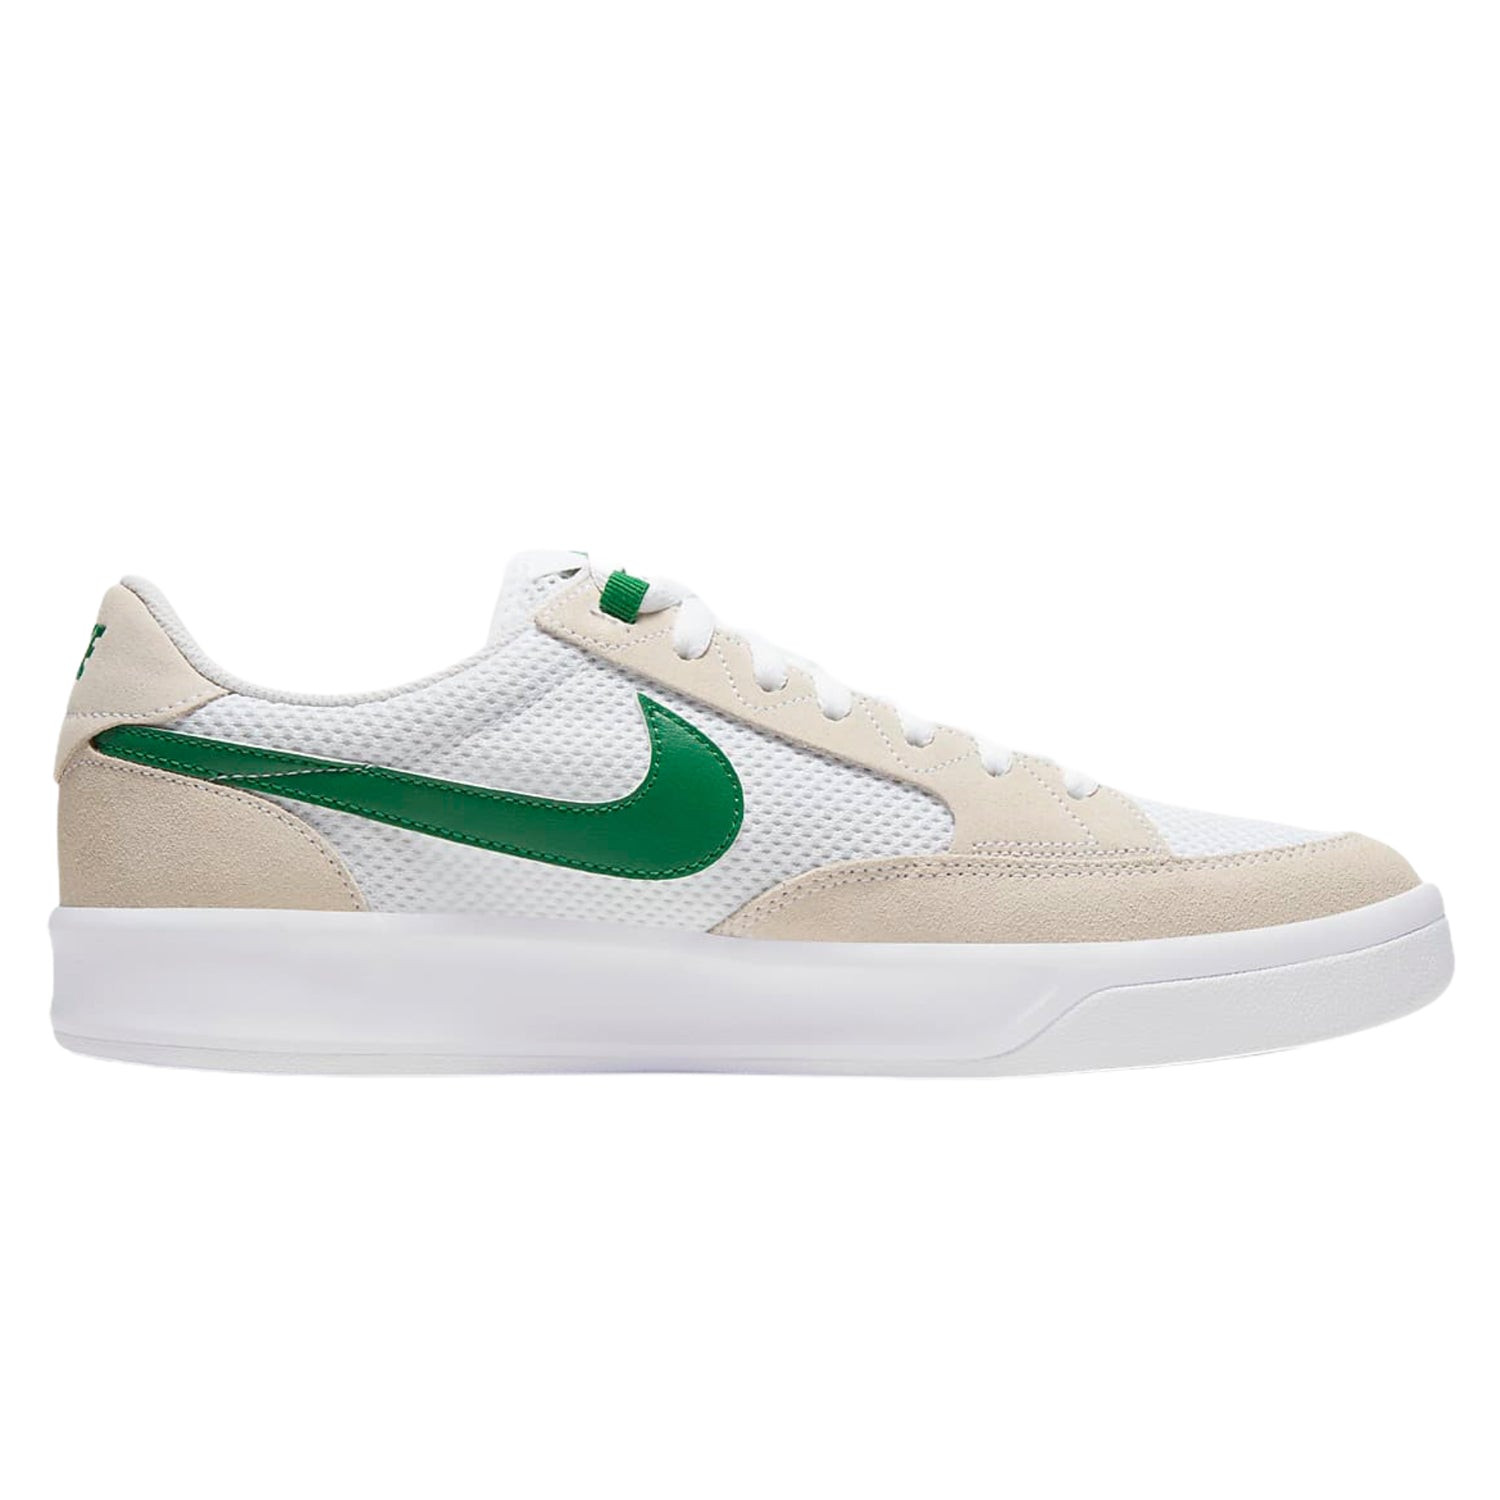 Nike SB Adversary White/White/Pine Green